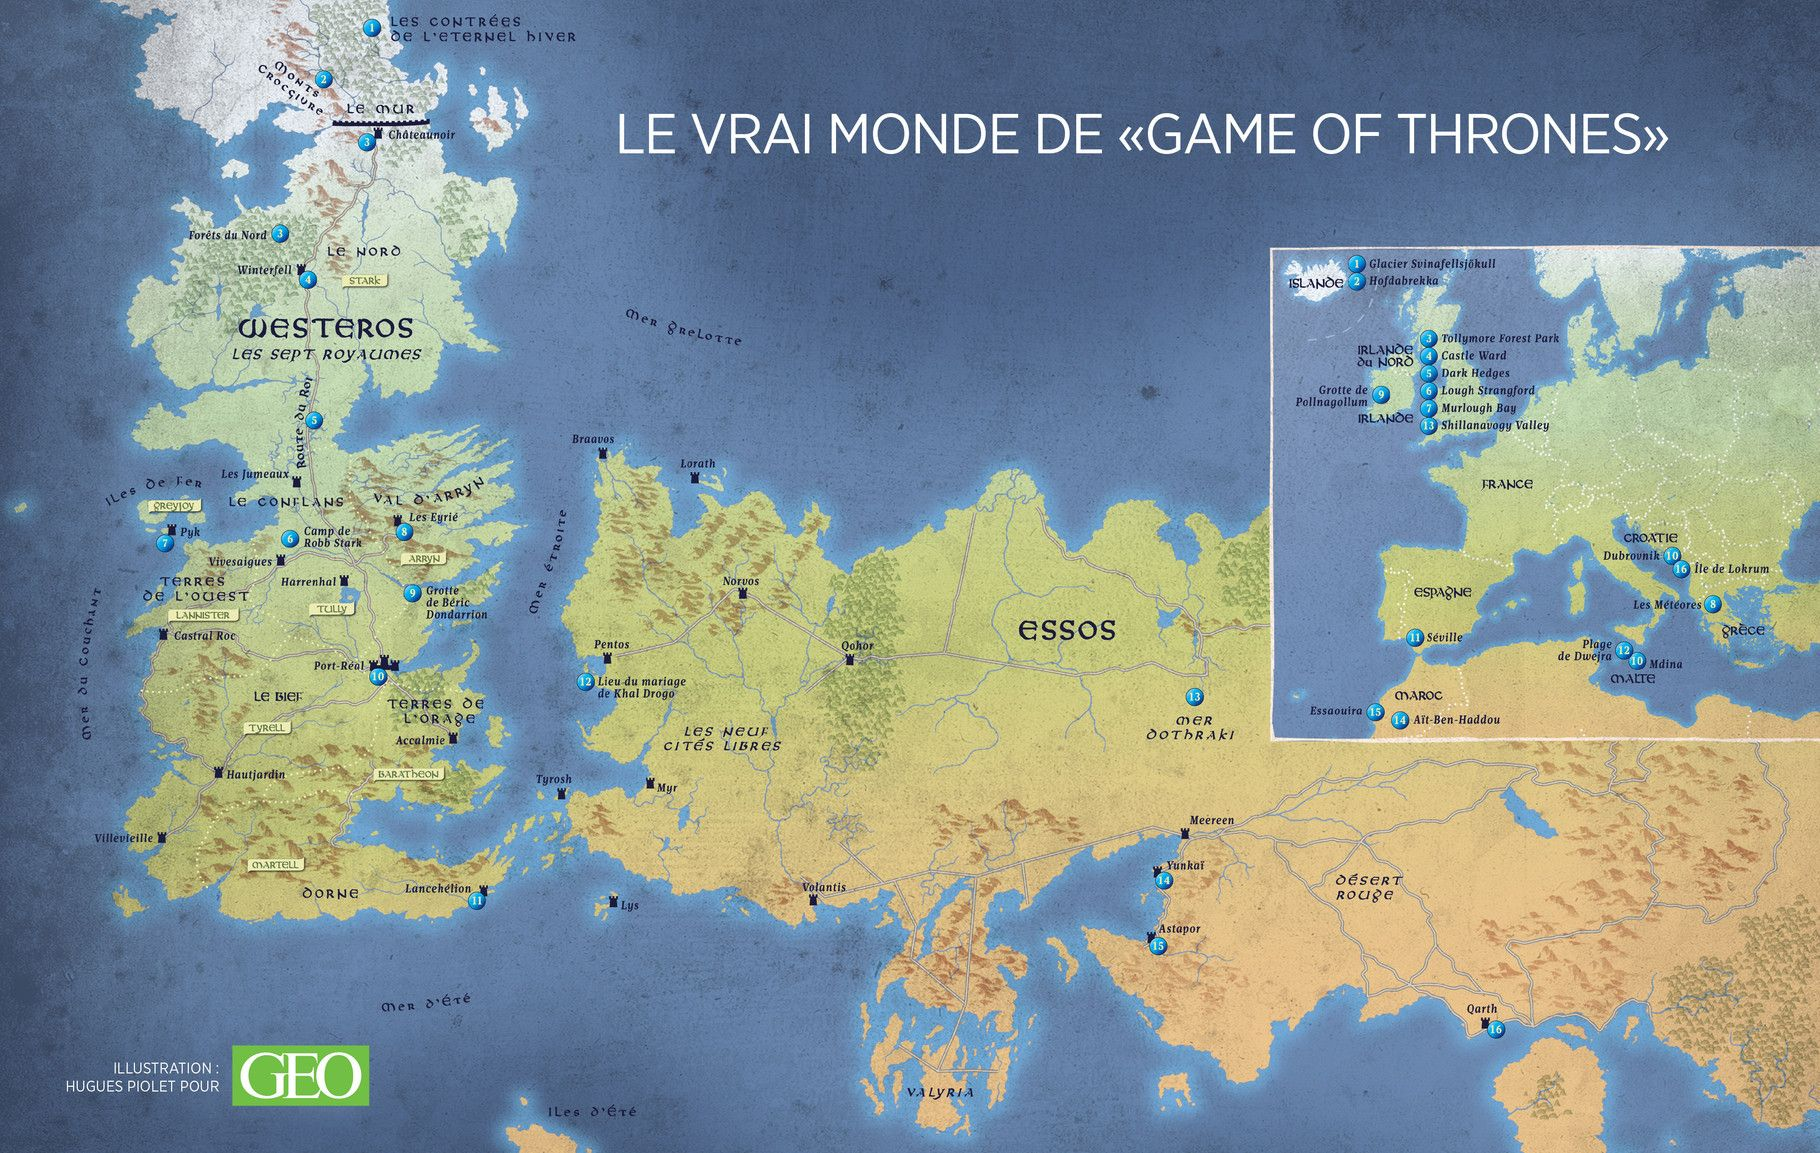 where were shot the romantic landscapes of game of thrones geo magazine unveils the real